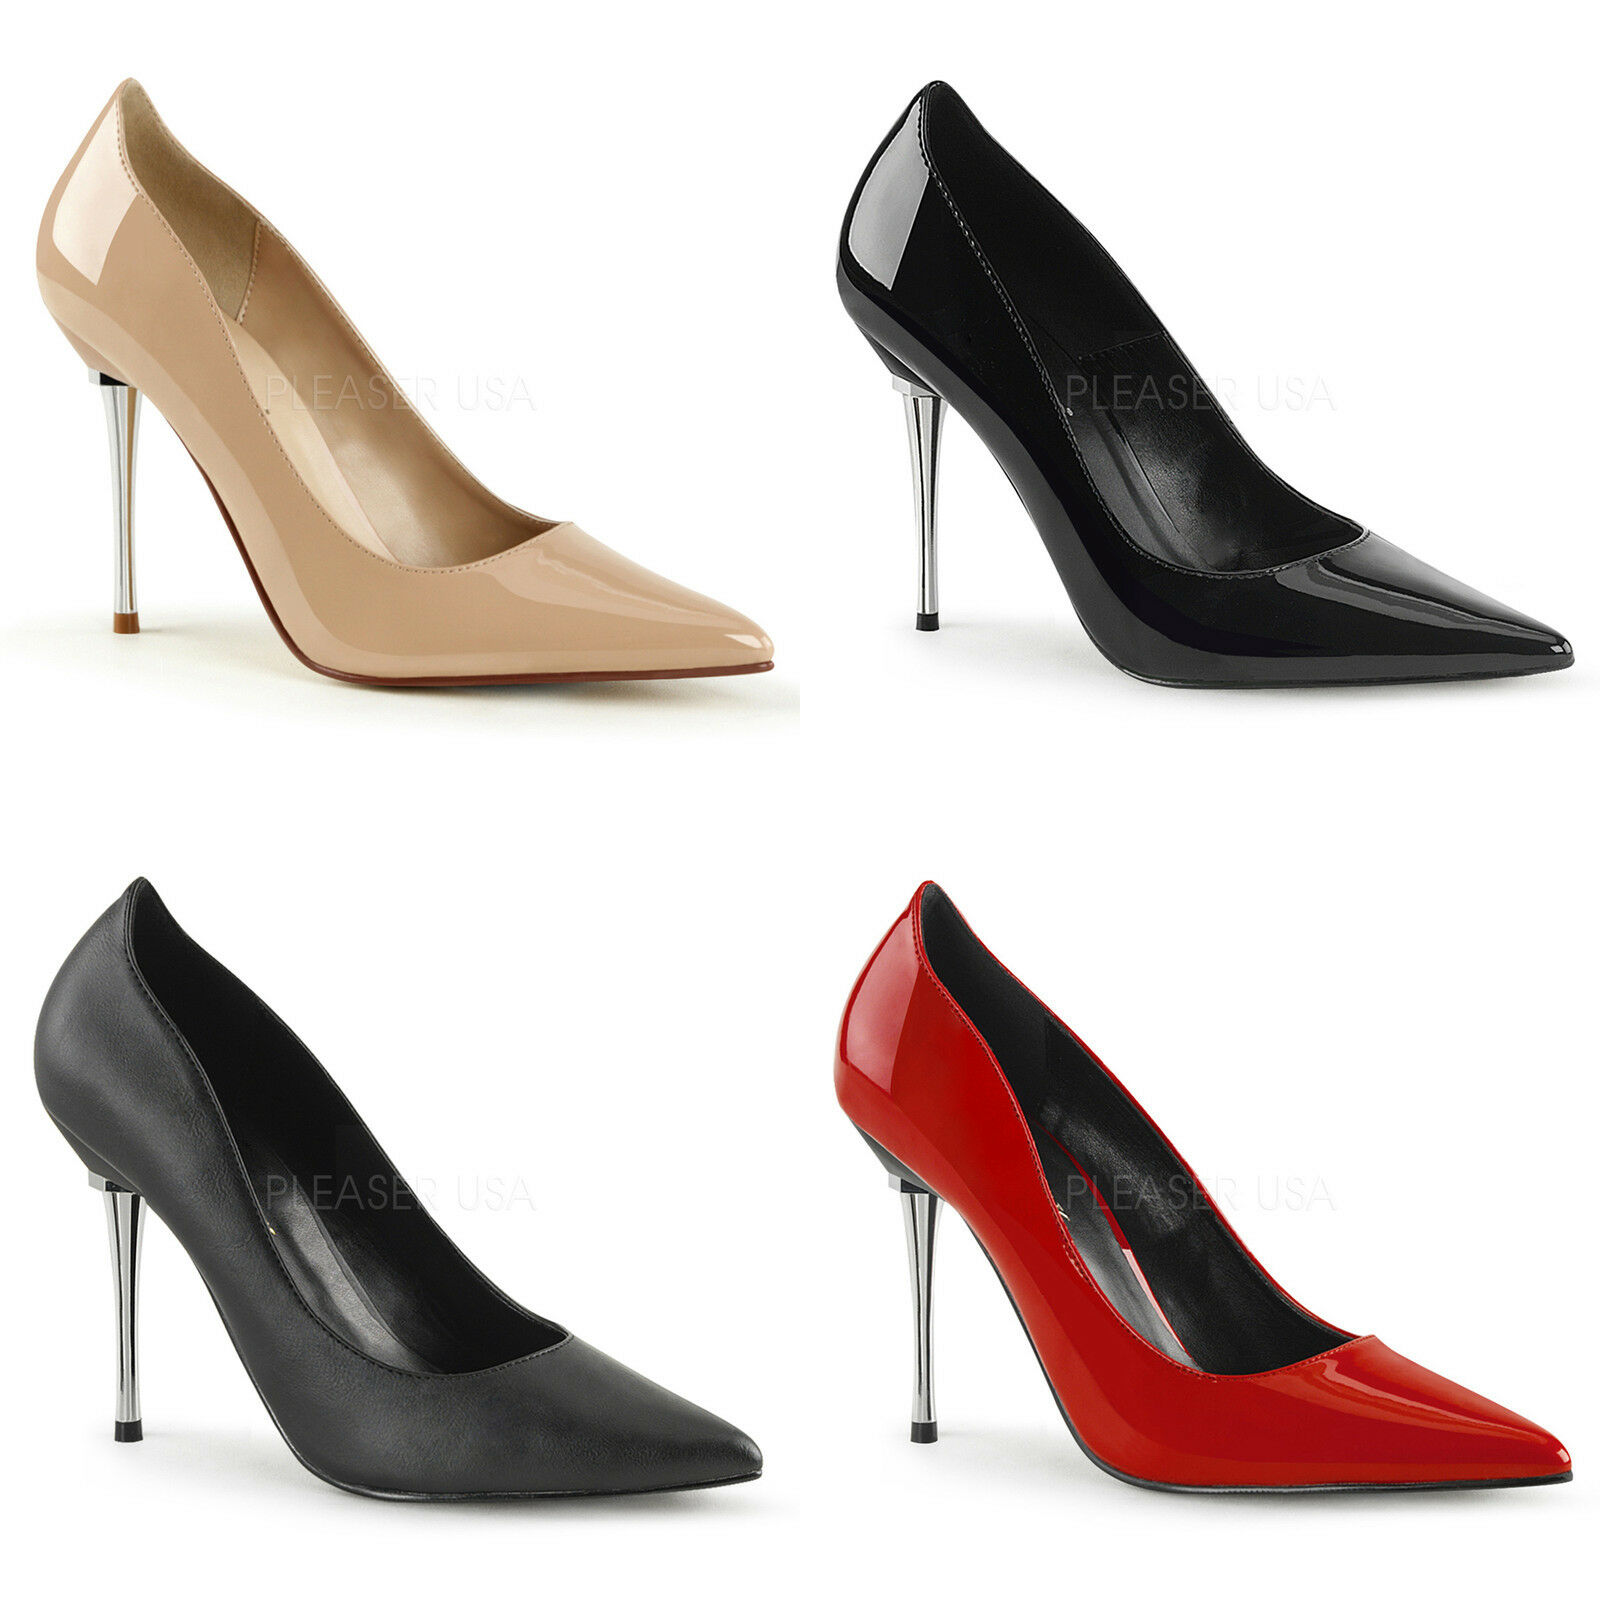 Appeal-20 sexy Lady High Heels Pumps black red haut Lack Mesizebsatz Gr 35-47